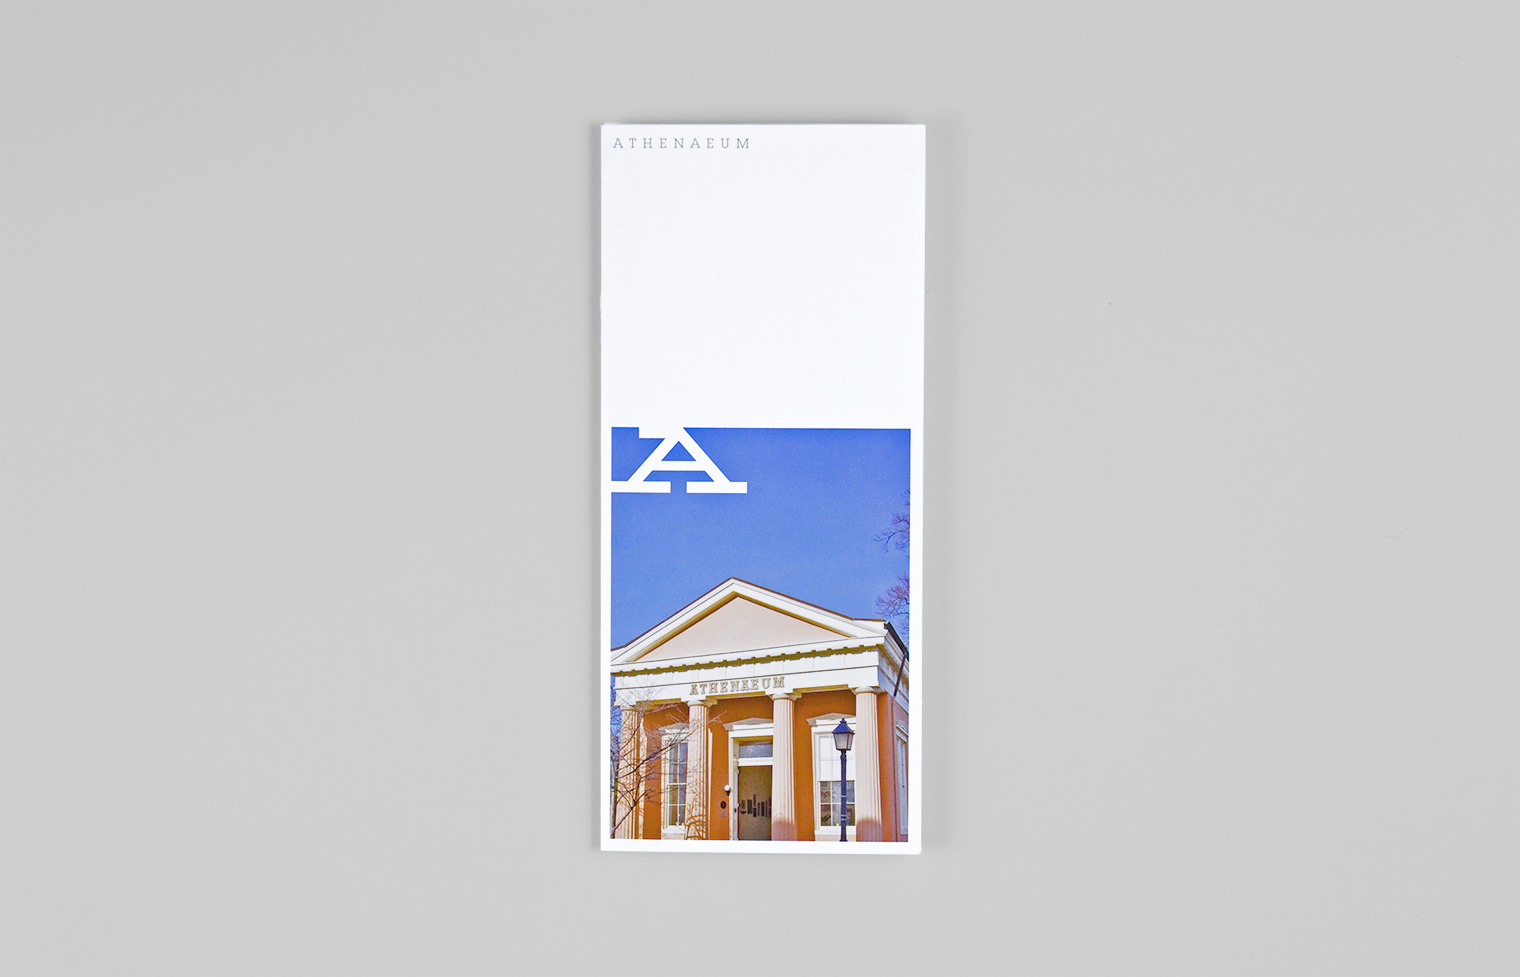 The cover of the Athenaeum's brochure features a photo of the Greek Revival building built in 1852.